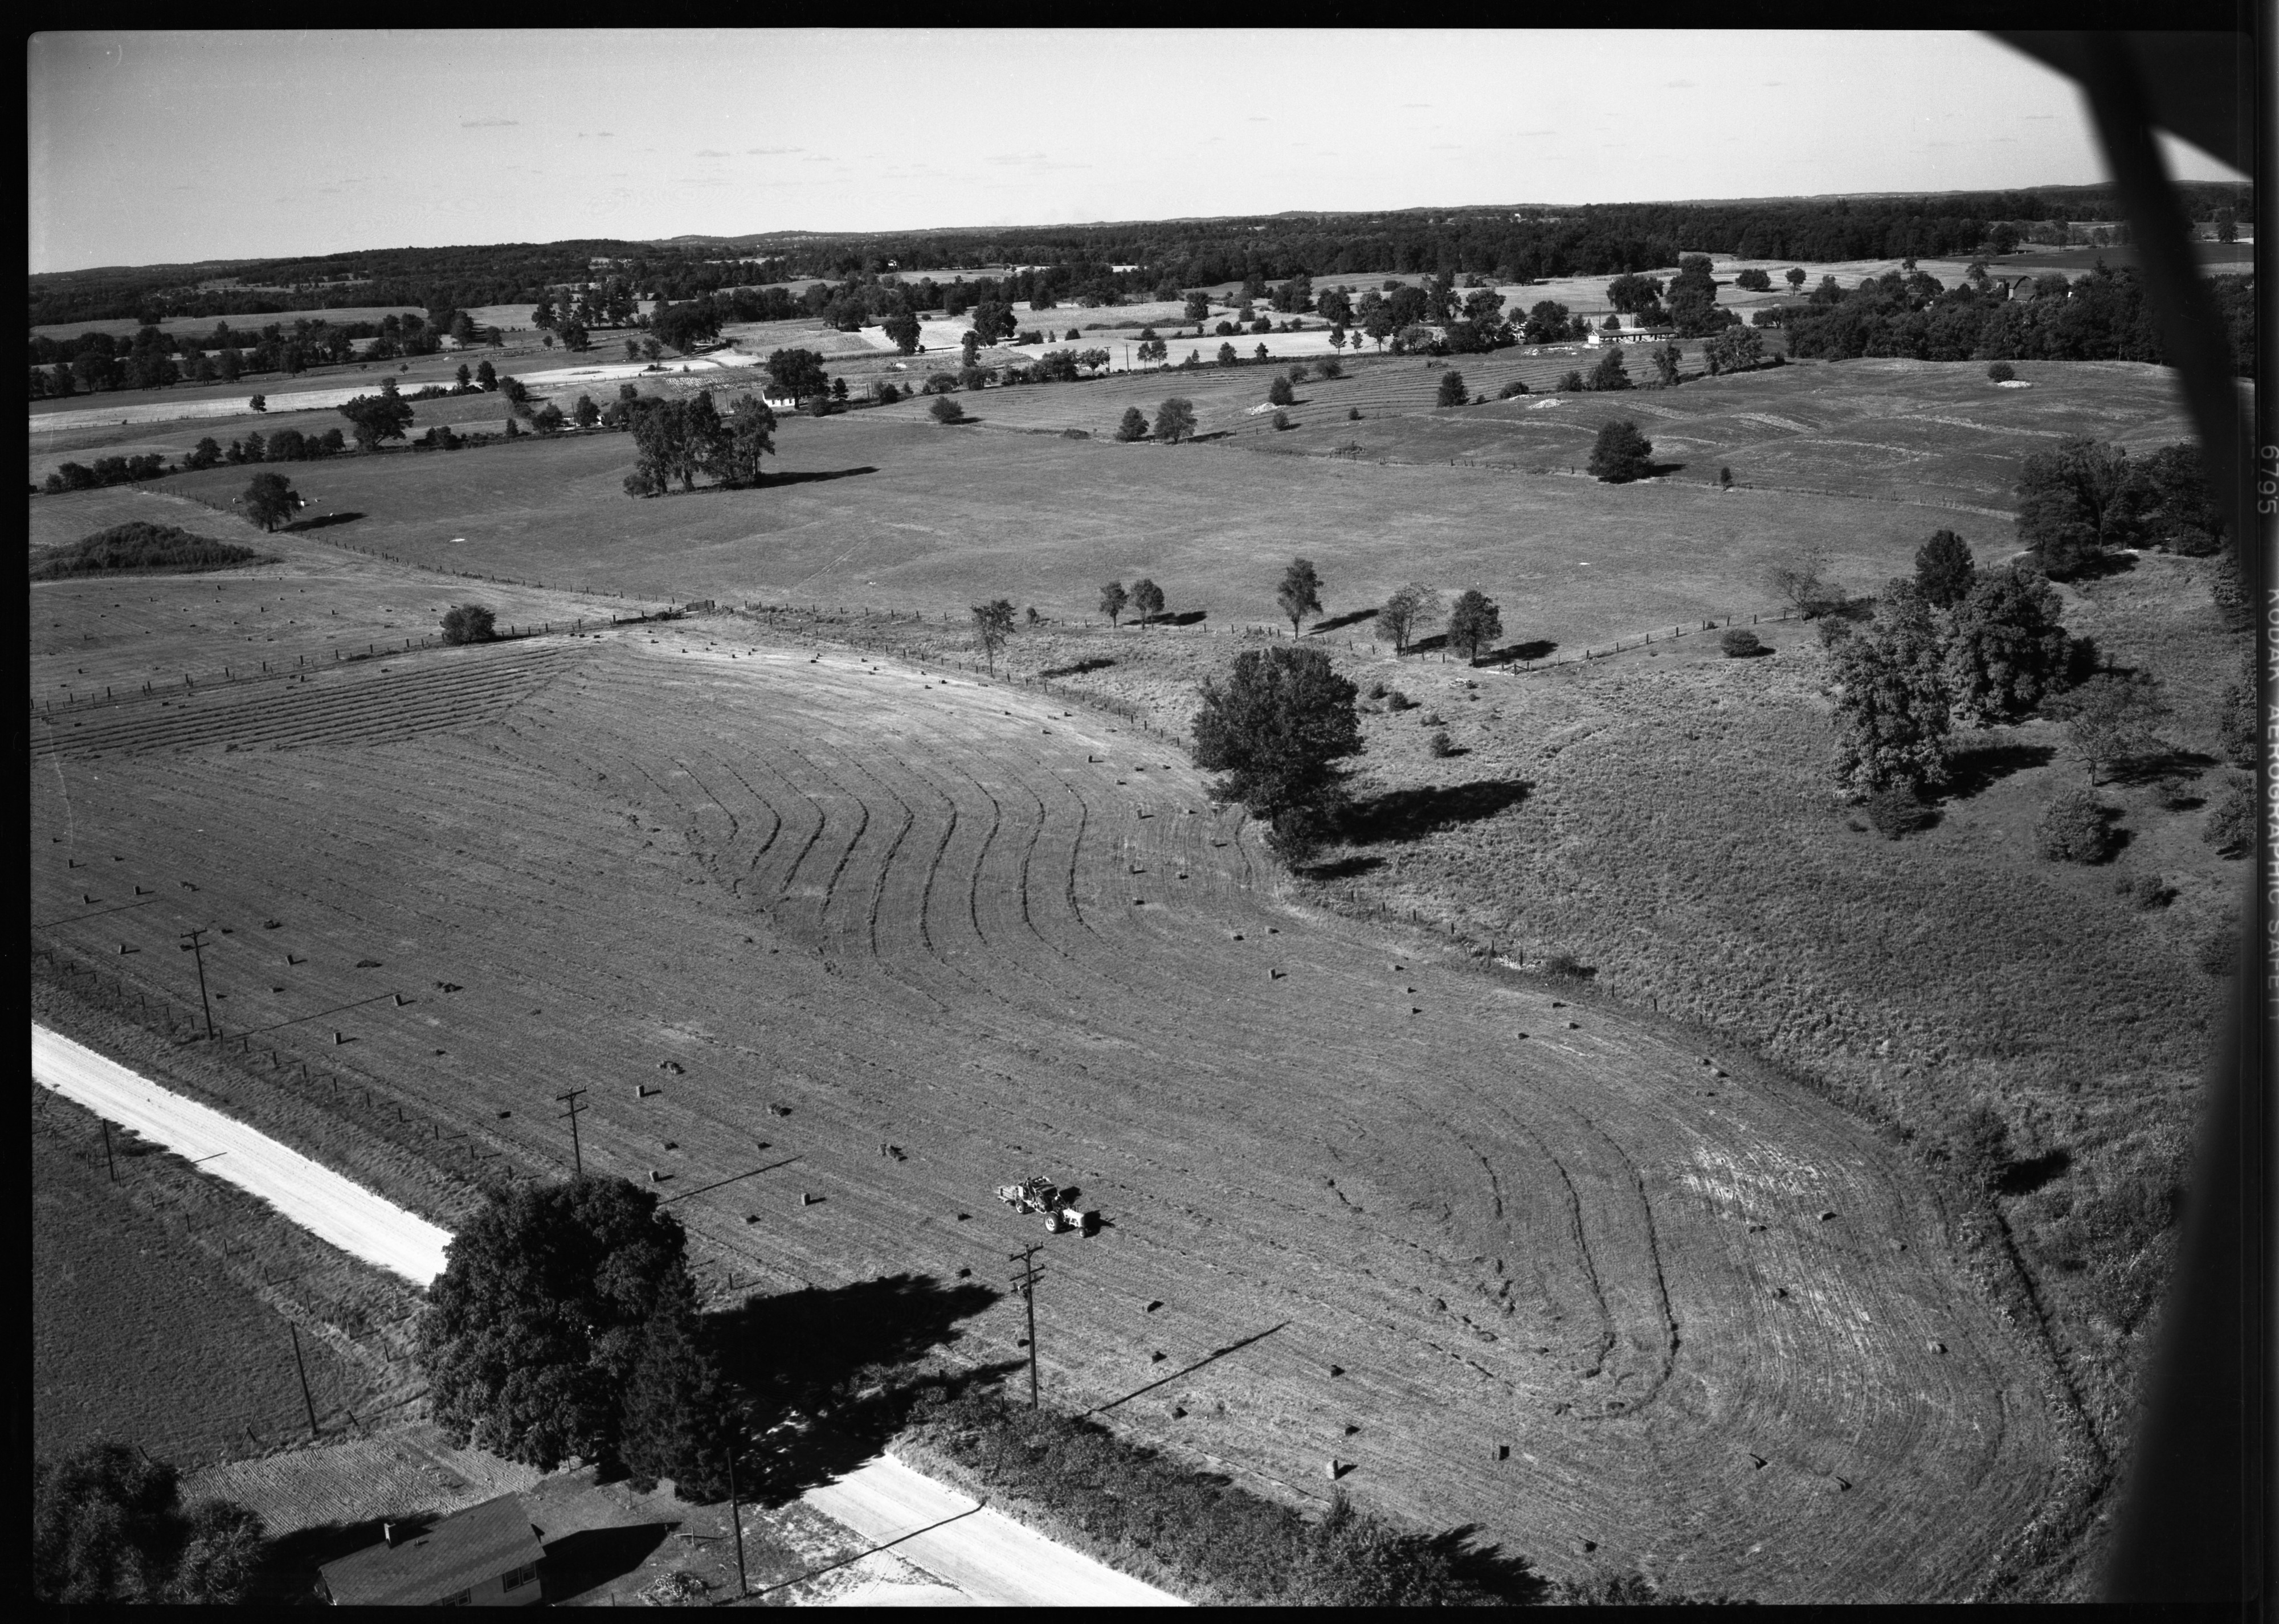 Aerial Photograph of Farmer Cutting Hayfield, September 1949 image